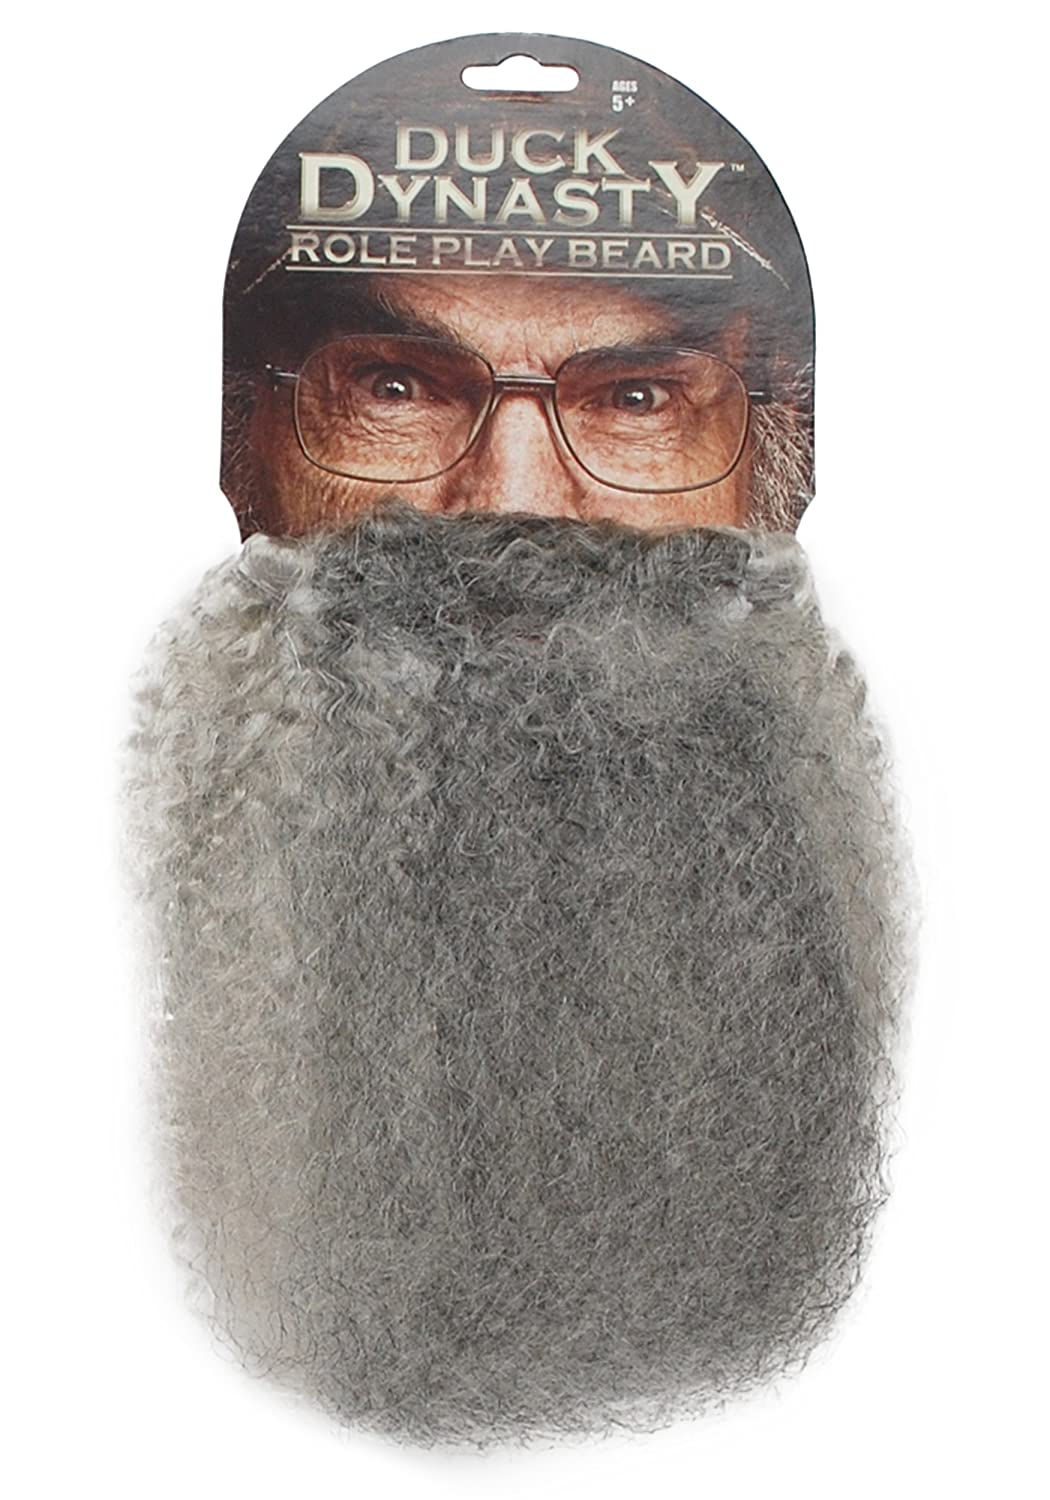 sc 1 st  Amazon.com & Amazon.com: Duck Dynasty Role Play Beard - Si: Toys u0026 Games